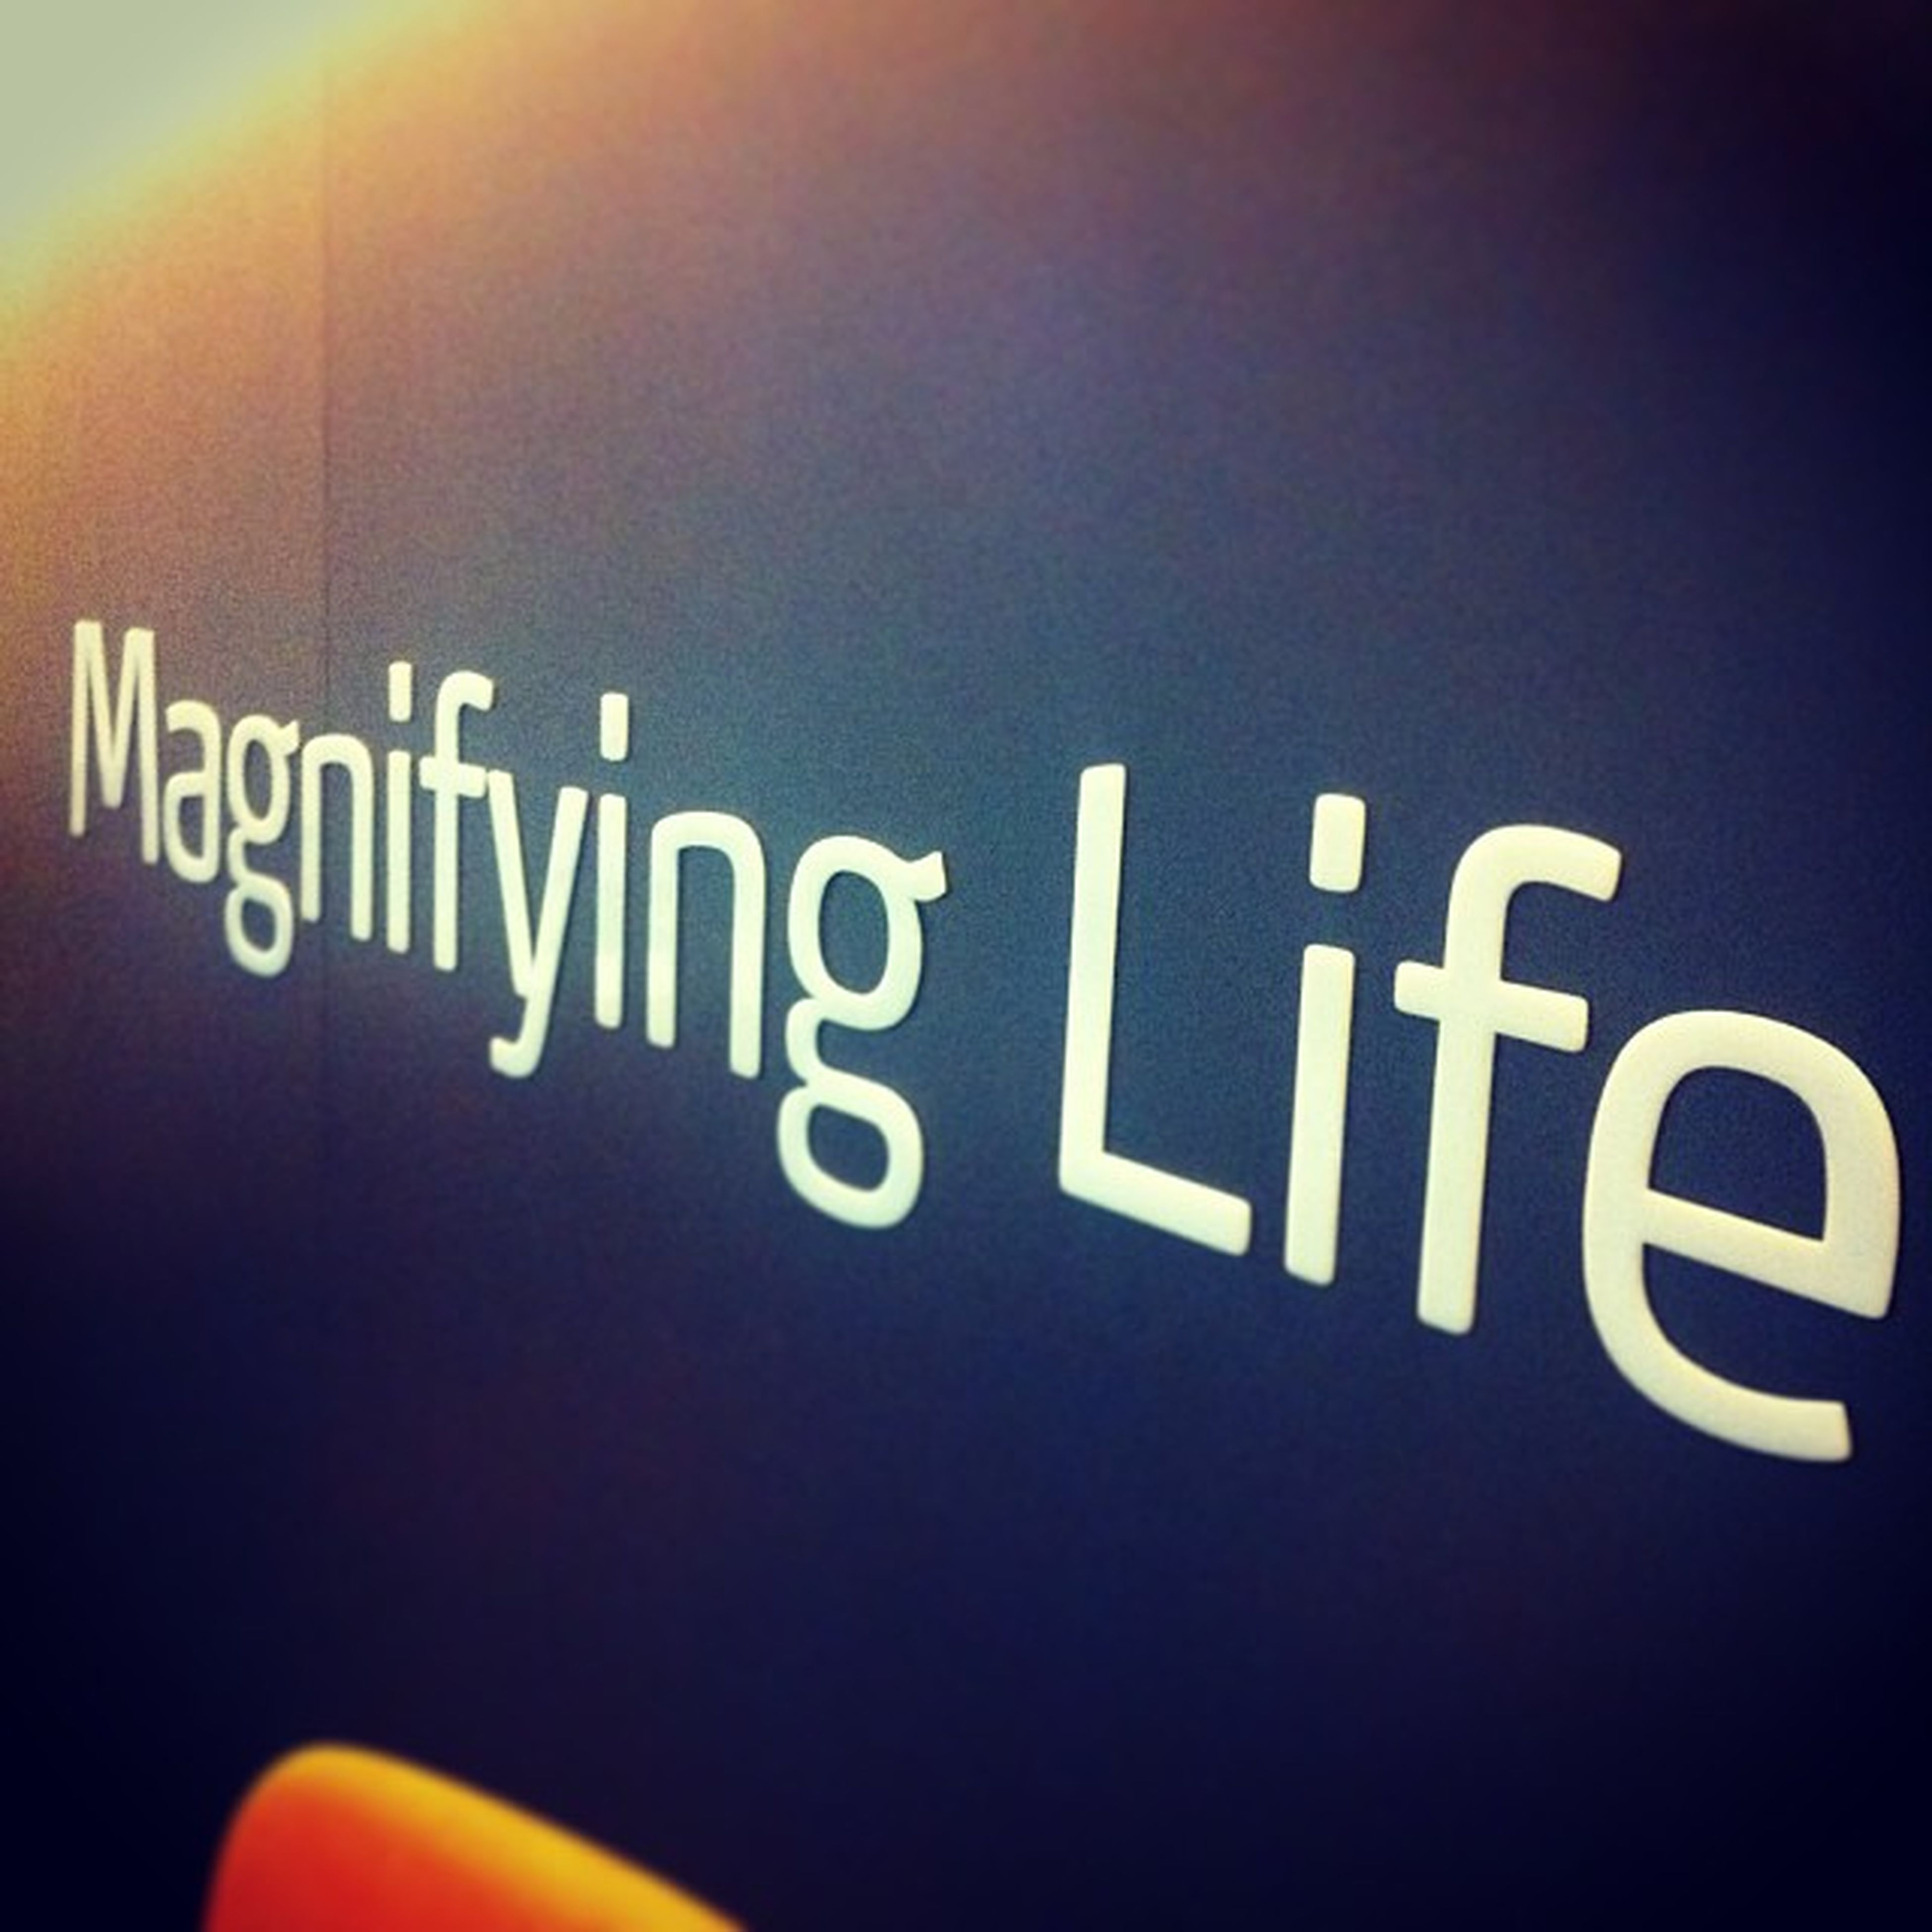 Magnifyinglife Zumstar Office 3play